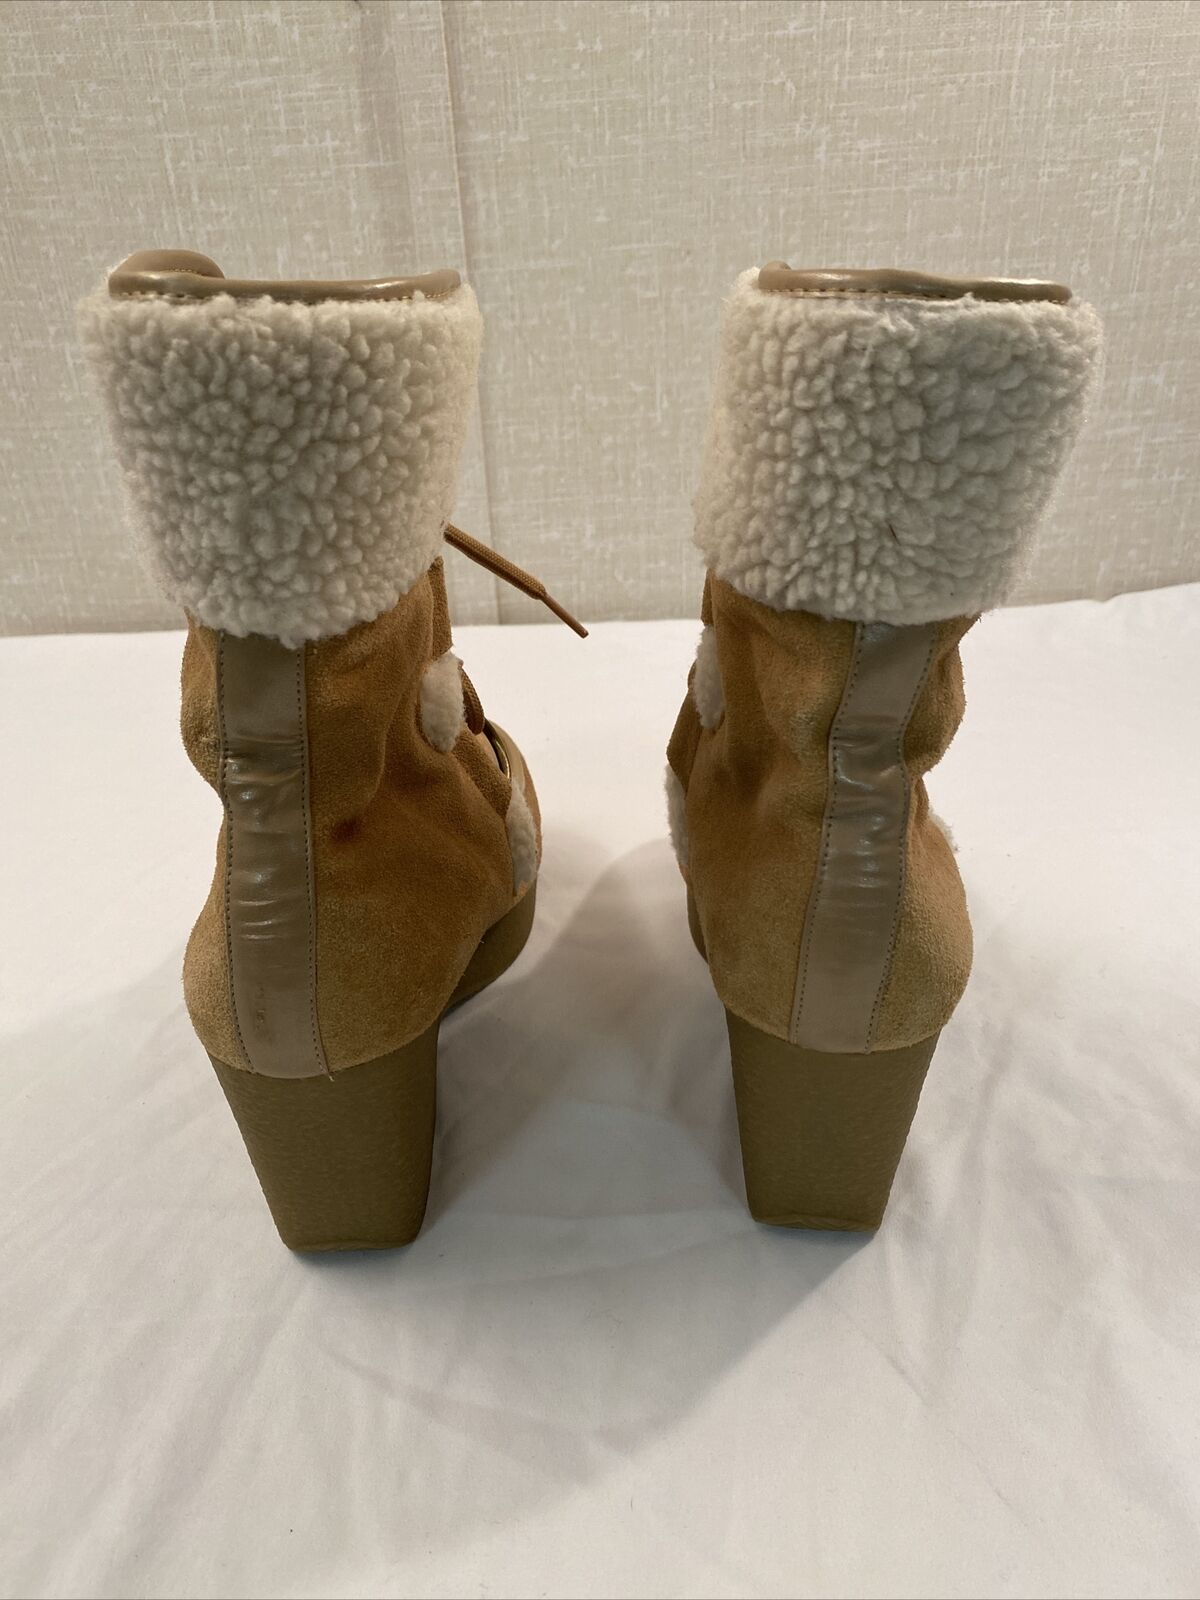 tommy hilfiger Brown boots women 8M - image 3